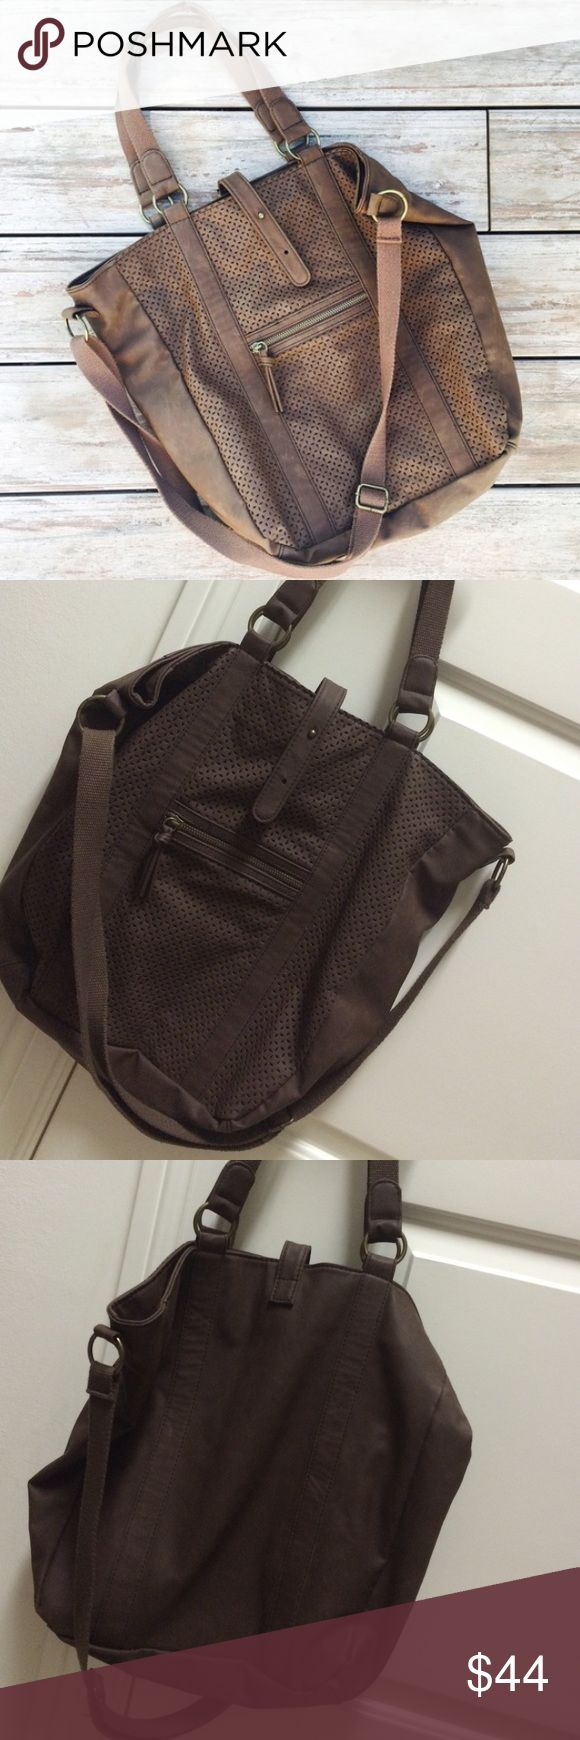 American Eagle leather tote bag used only one time // roomy inside American Eagle Outfitters Bags Totes